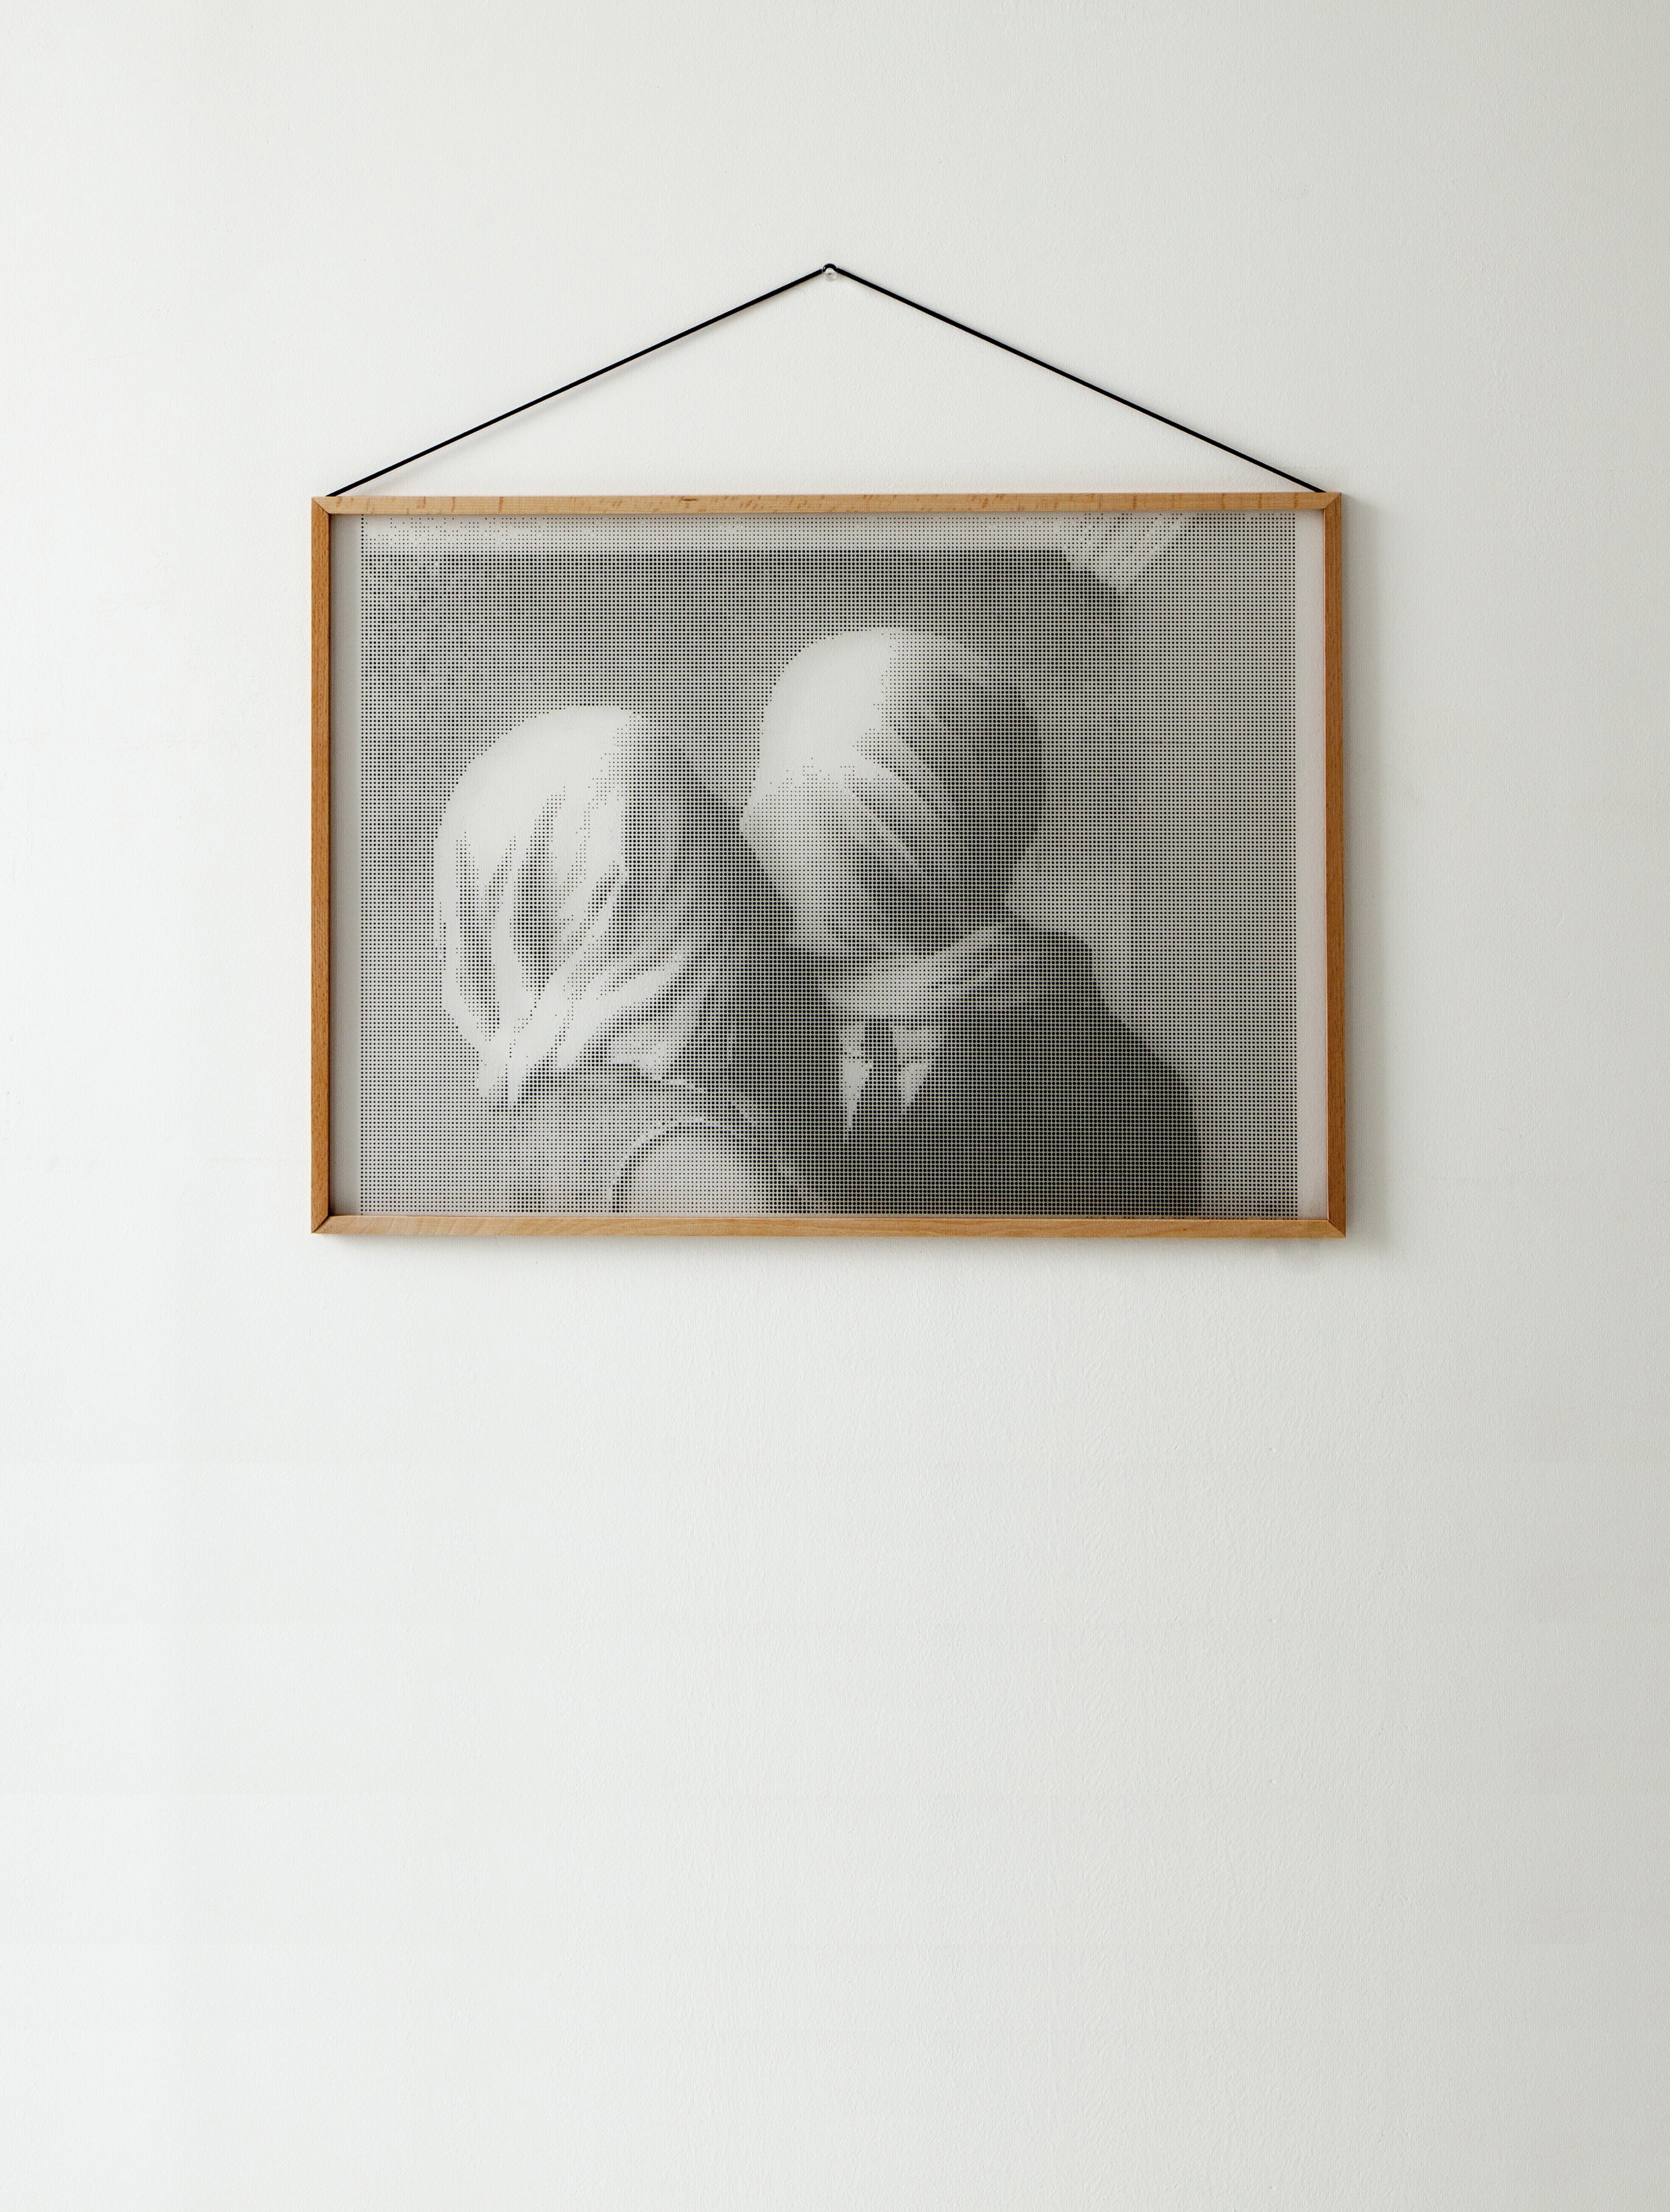 Digitize: The Lovers by René Magritte  Digit#: 34,687  Size: A2